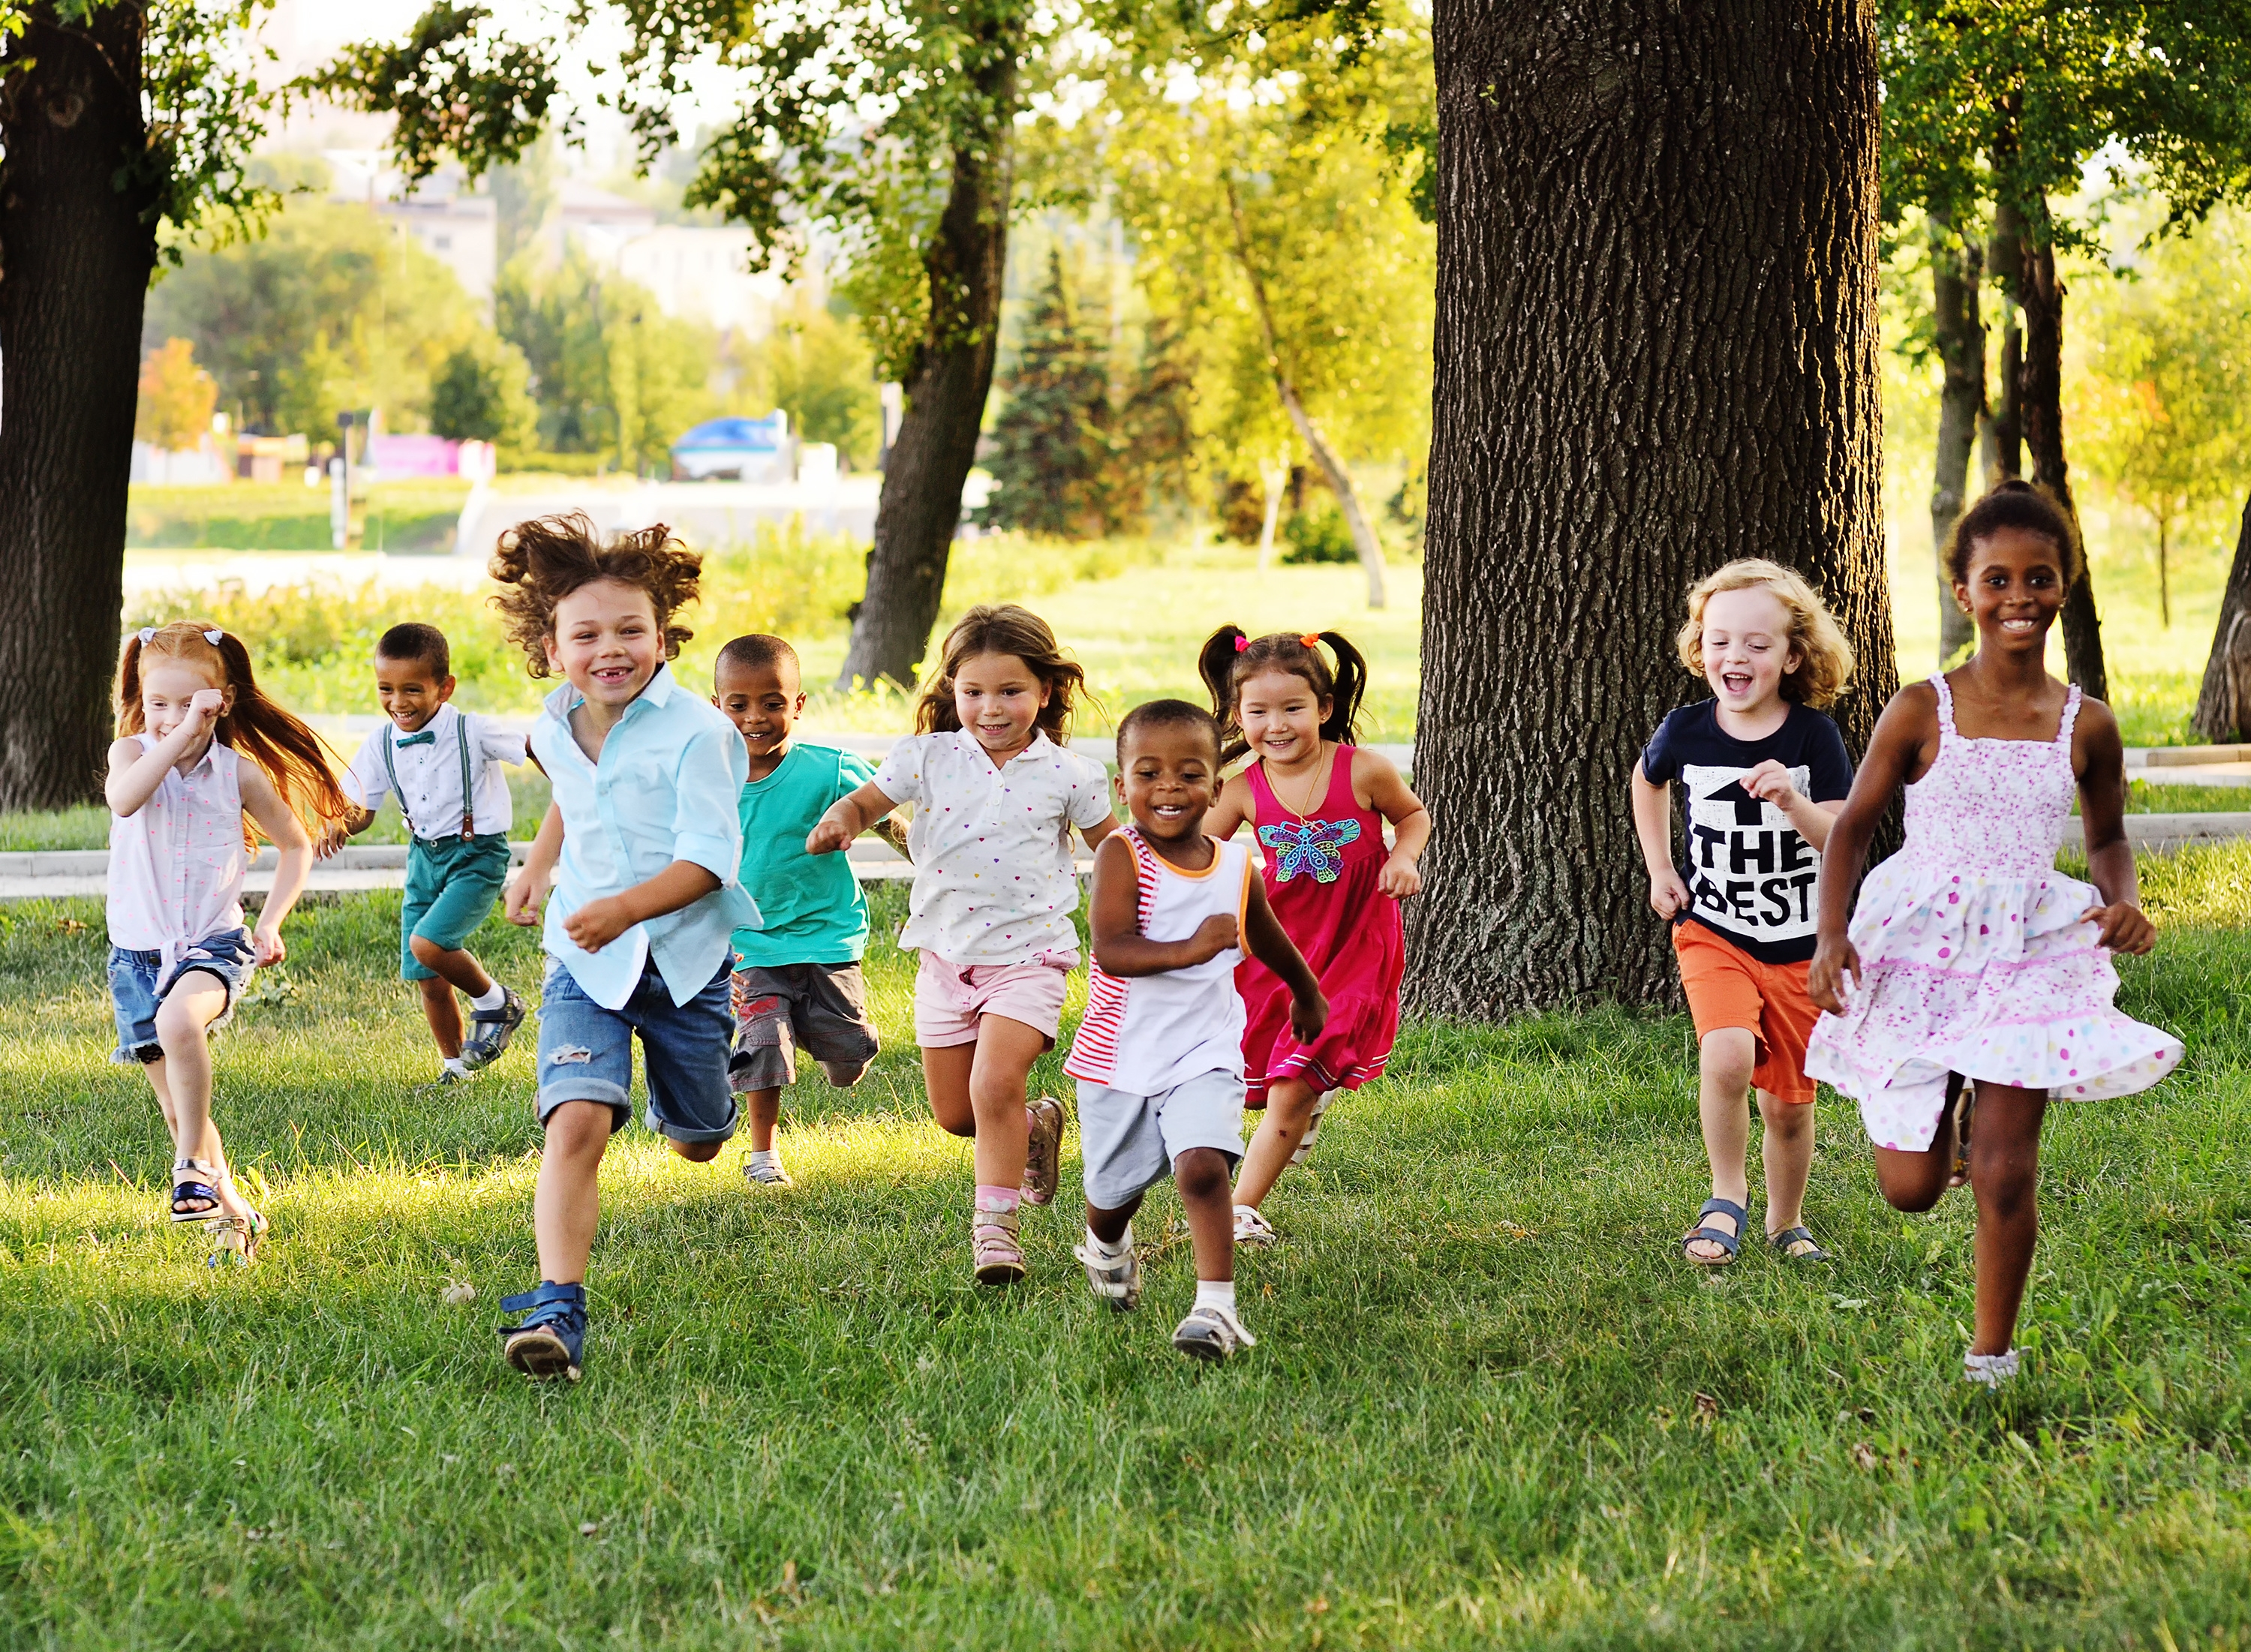 a group of preschoolers running on the grass in the Park.